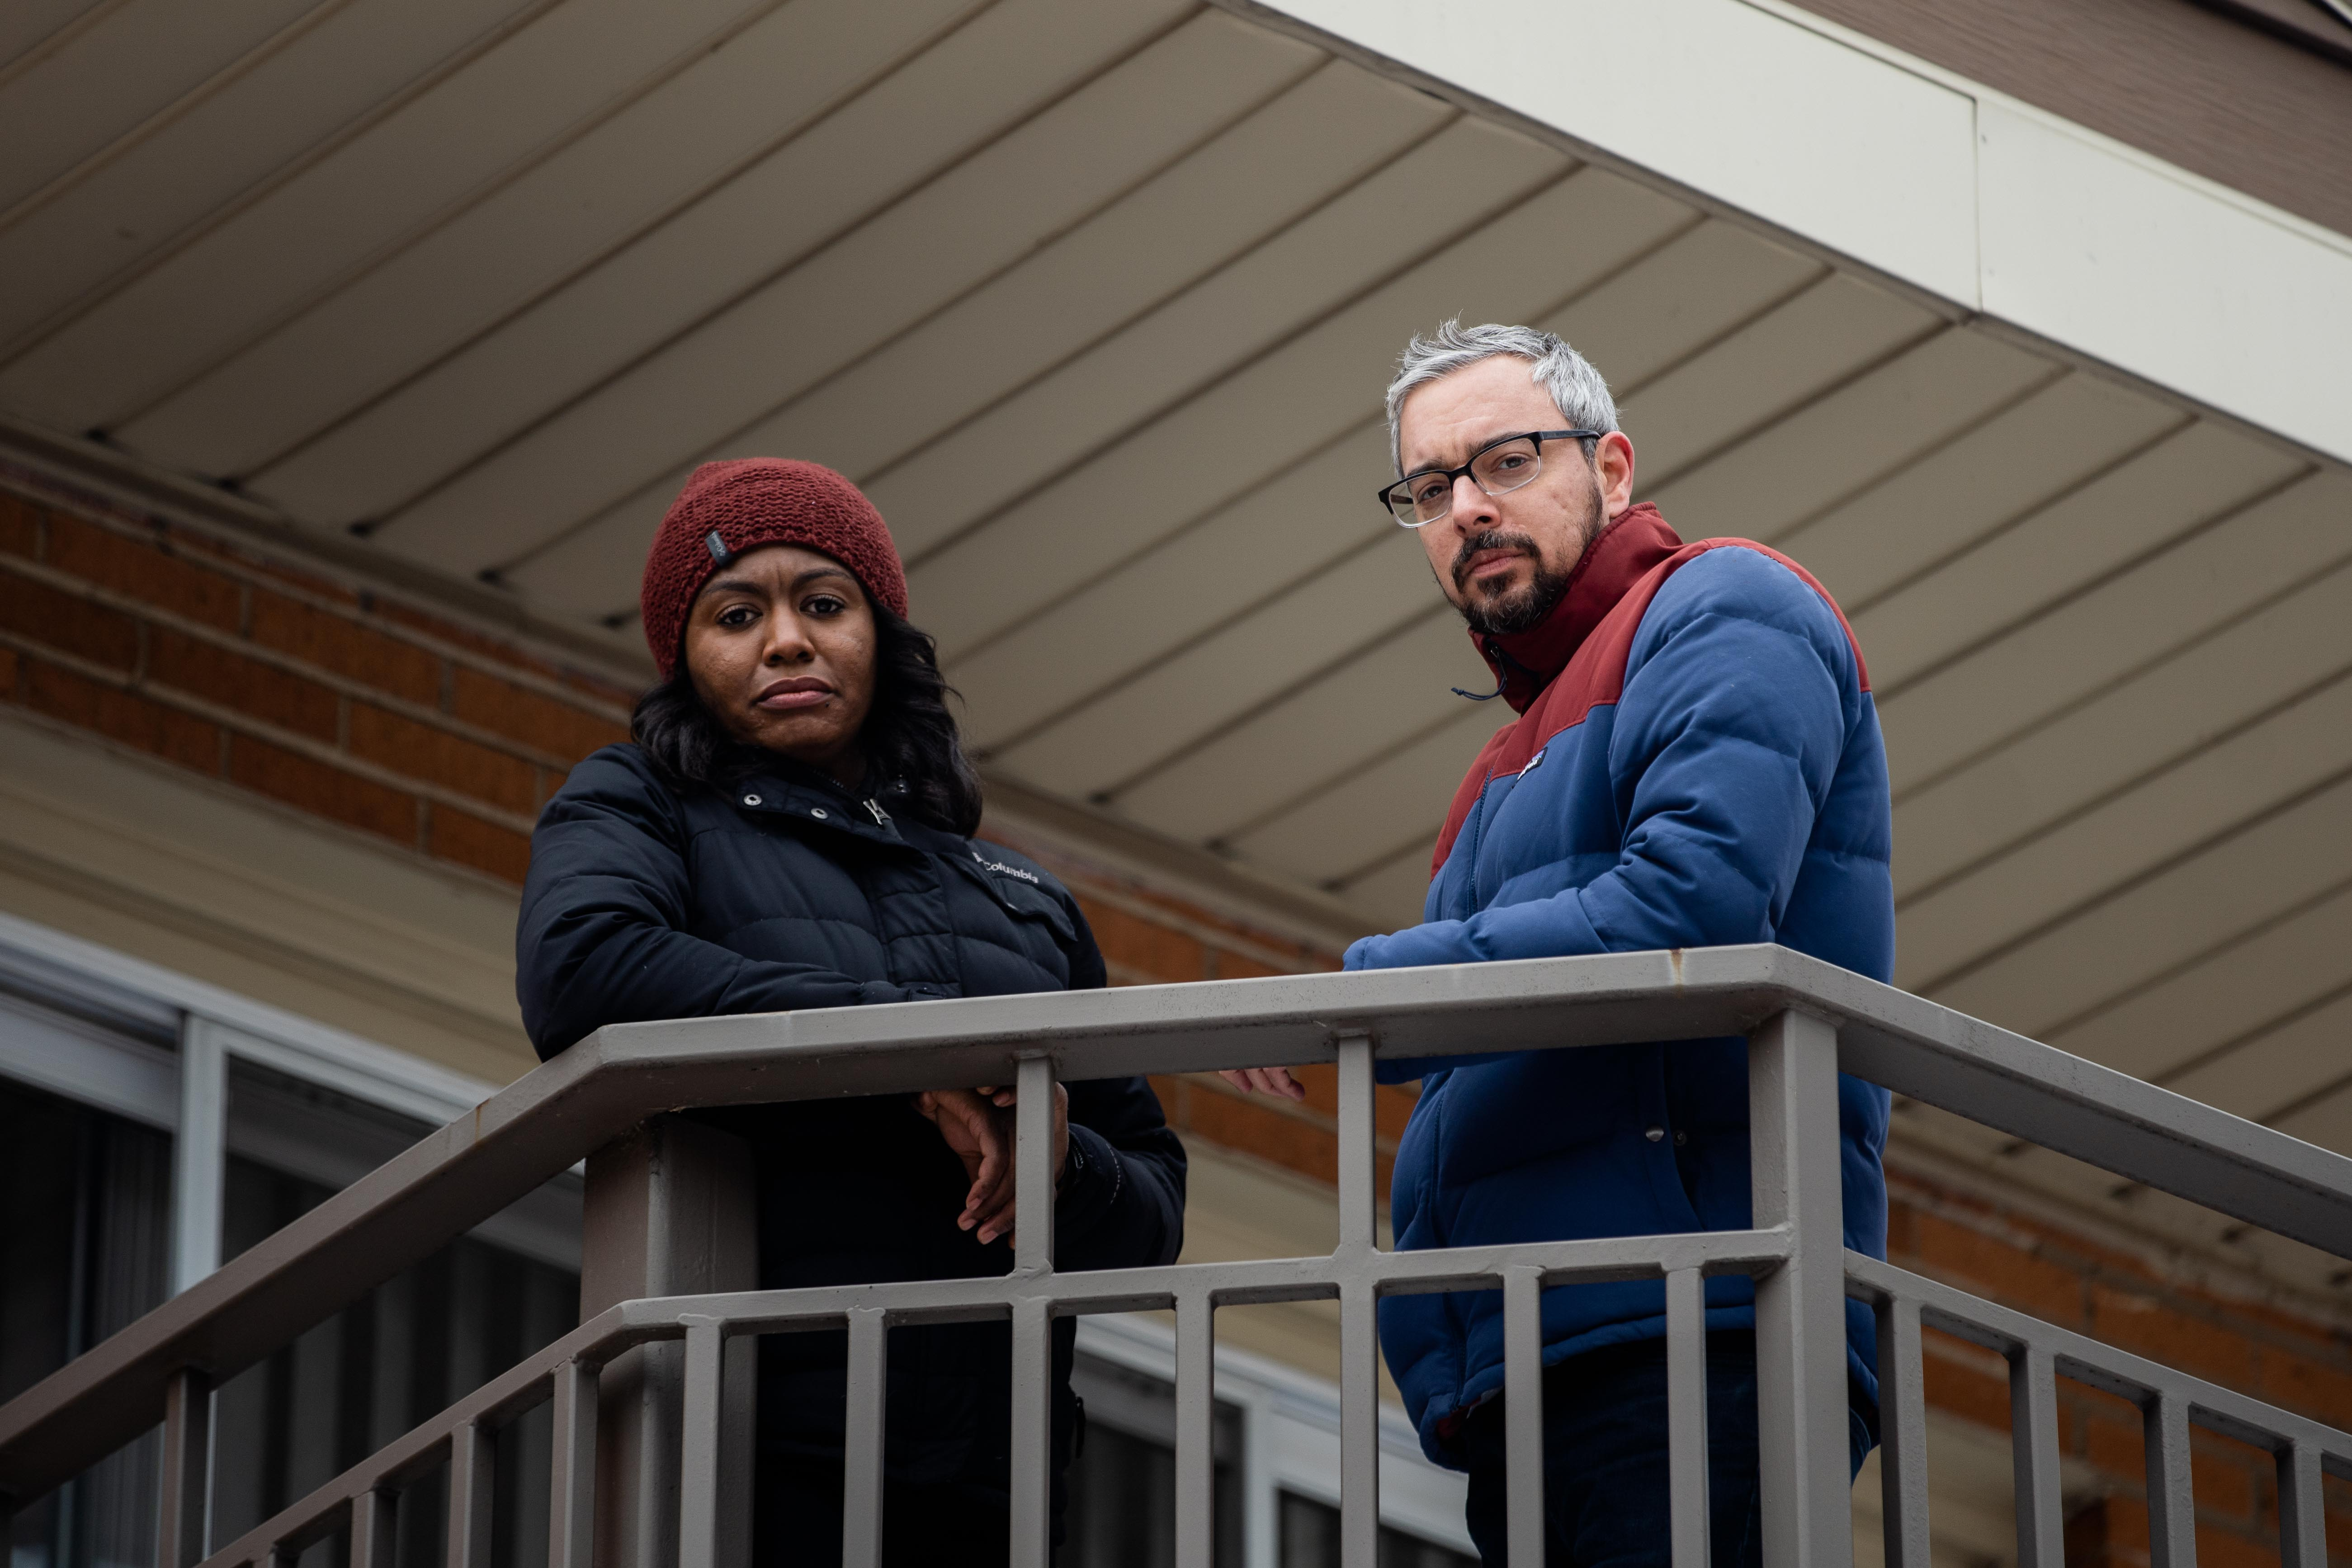 Ashley Holmes and Dave Papish on the balcony of their Rogers Park condo. Just as the coronavirus pandemic hit, they faced a new problem: a violent squatter next door who wouldn't leave and couldn't be forced to.